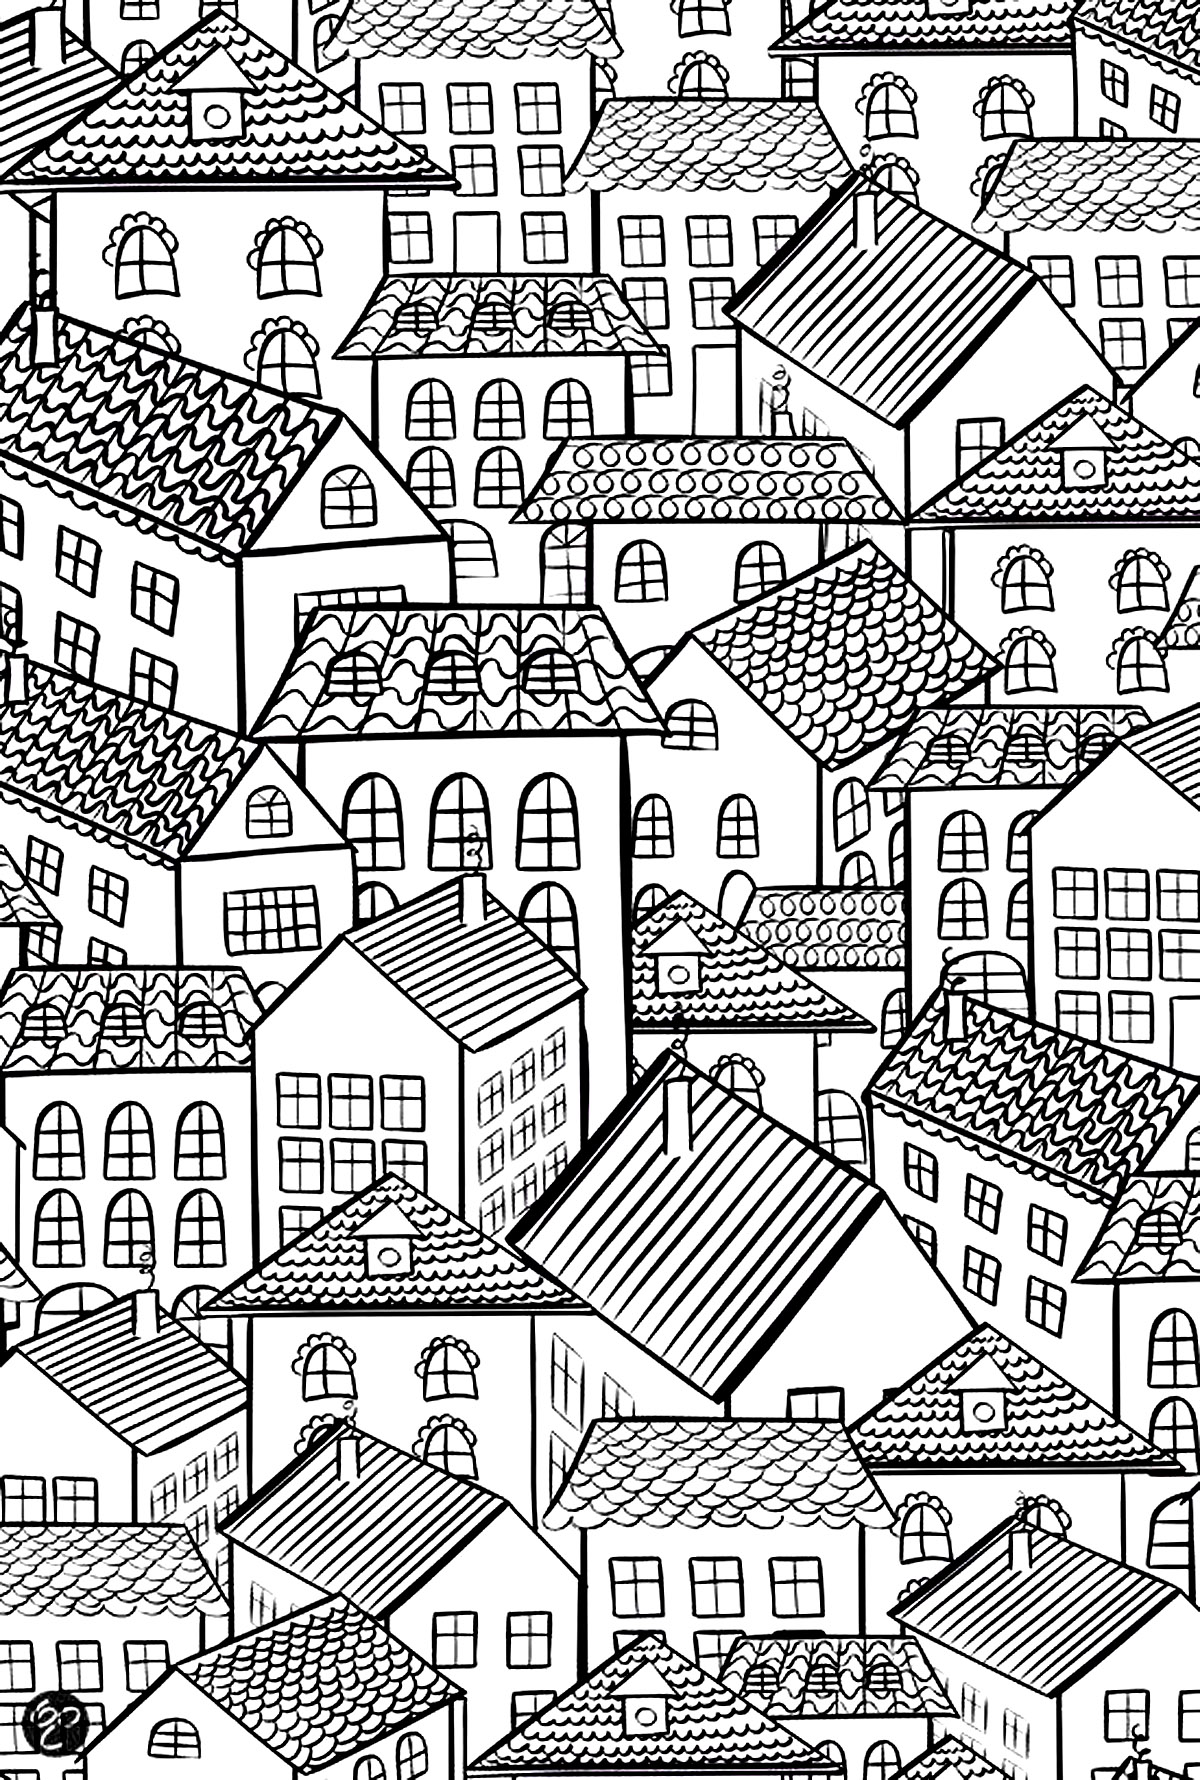 coloring houses architecture village roofs architecture adult coloring pages coloring houses